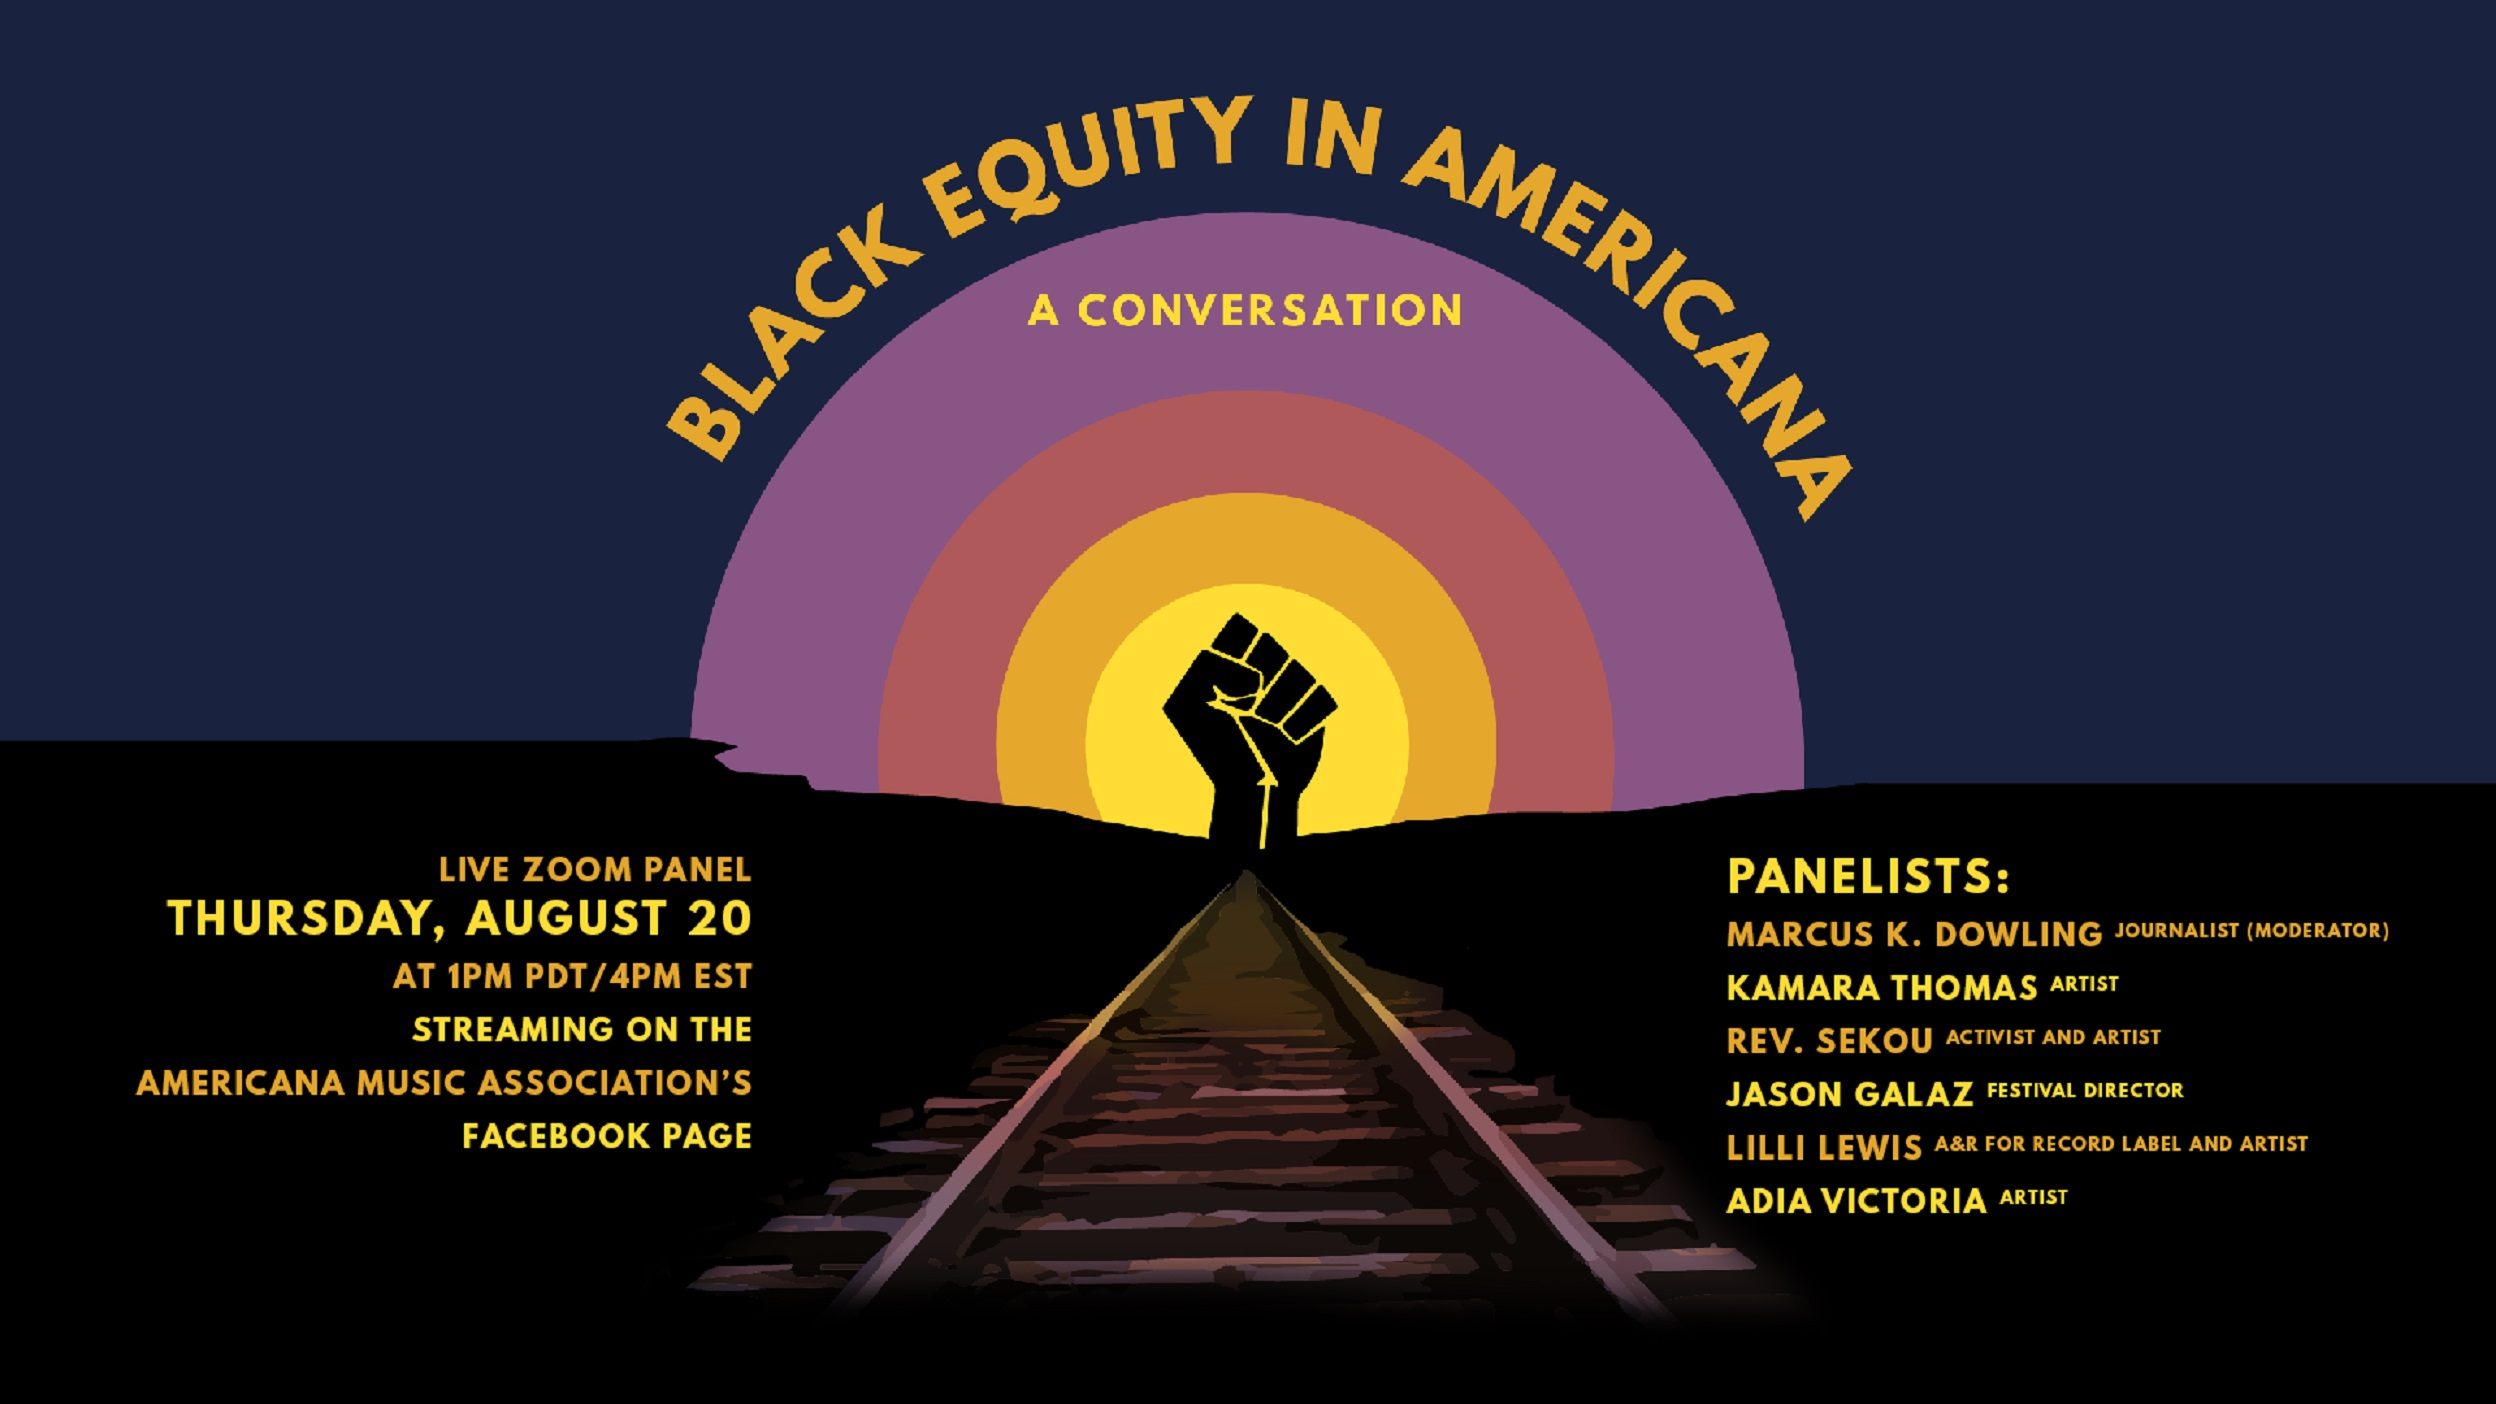 Announcing Black Equity in Americana: A Conversation